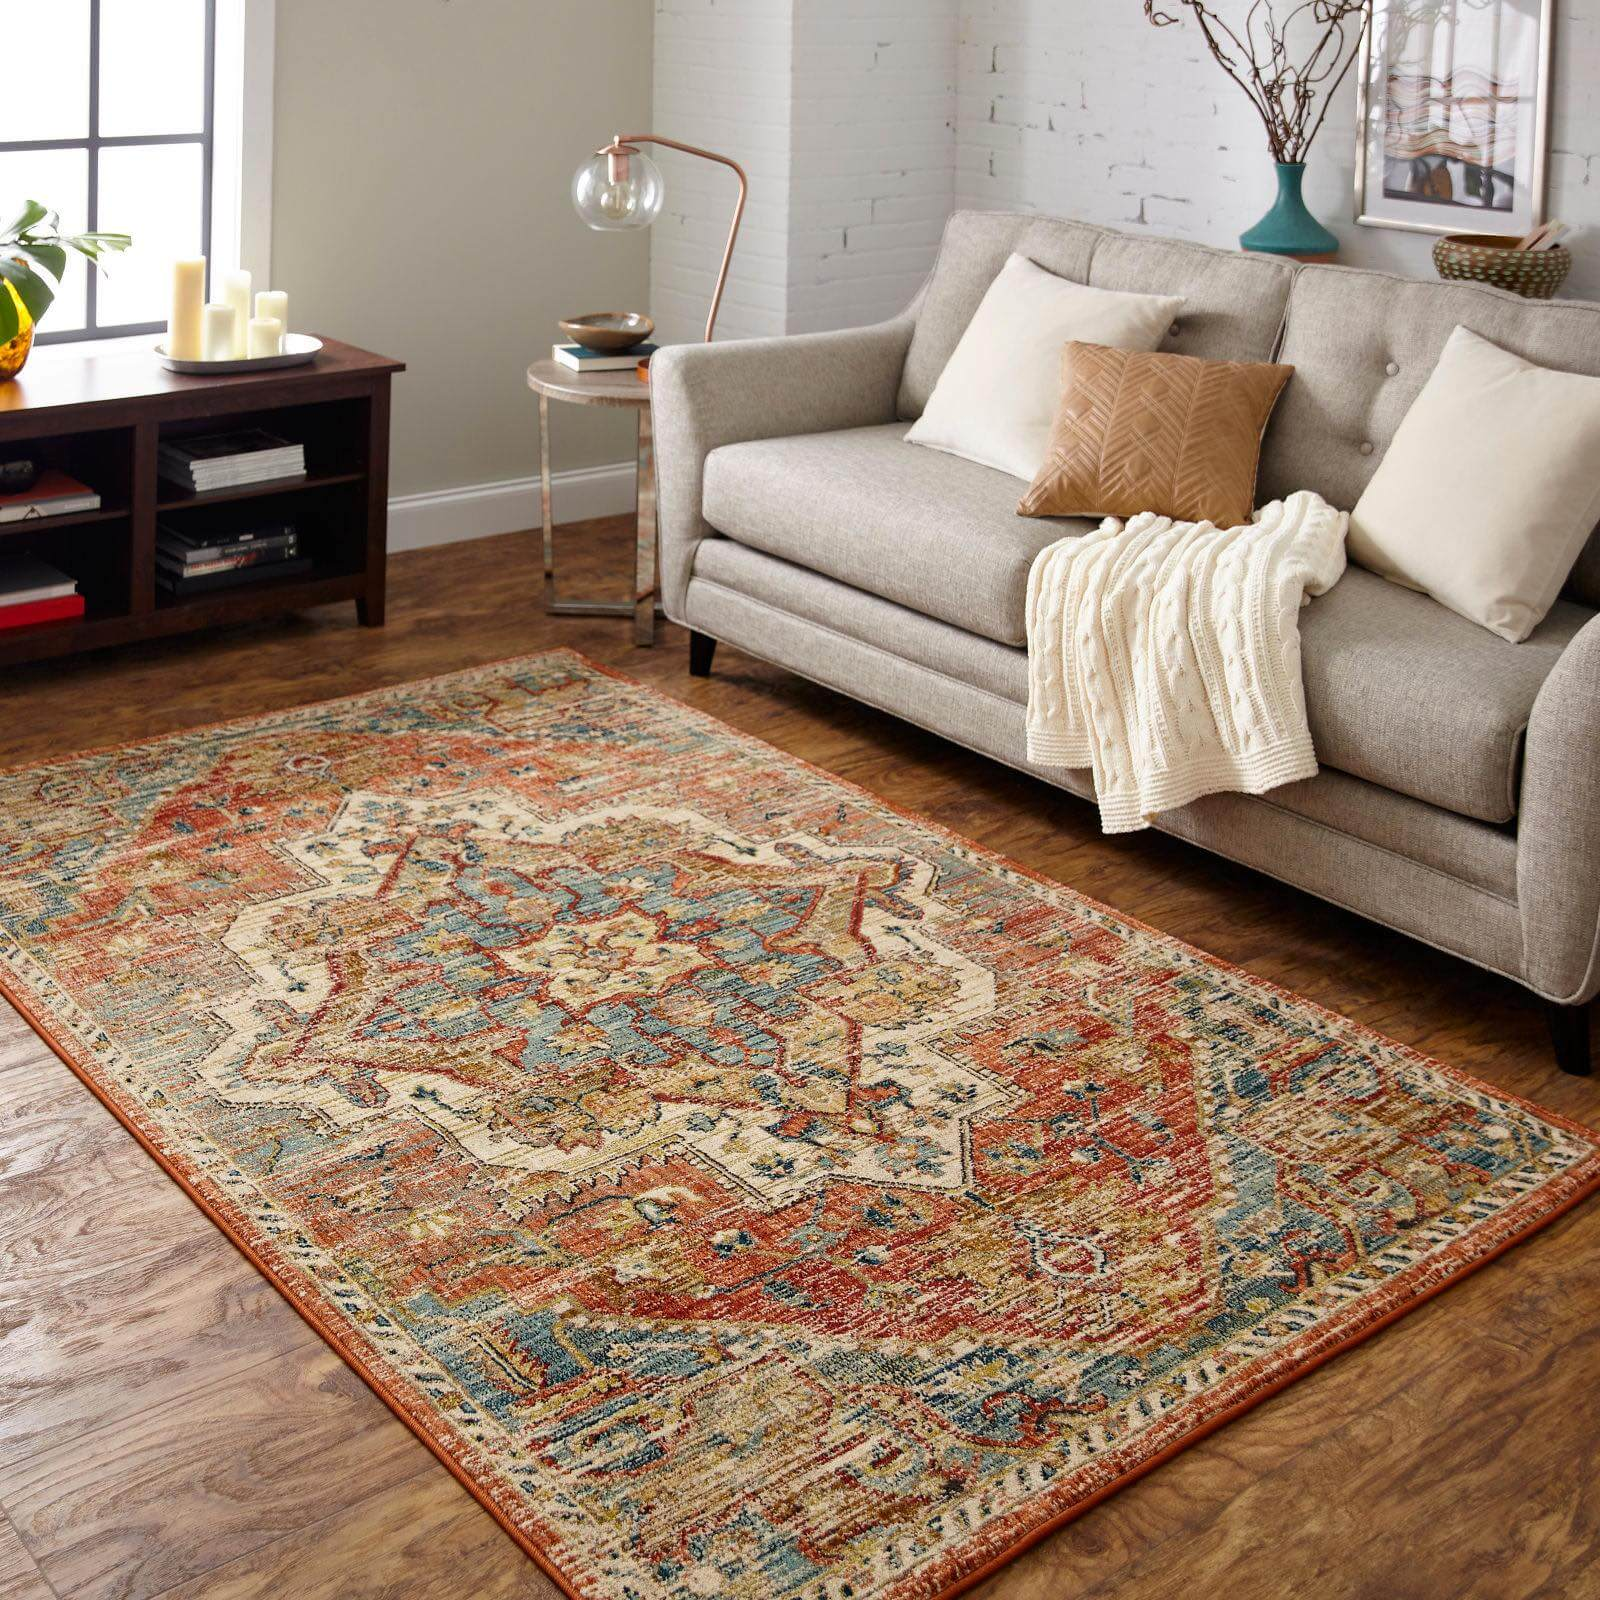 karastan_kasbar_room | McSwain Carpet & Floors